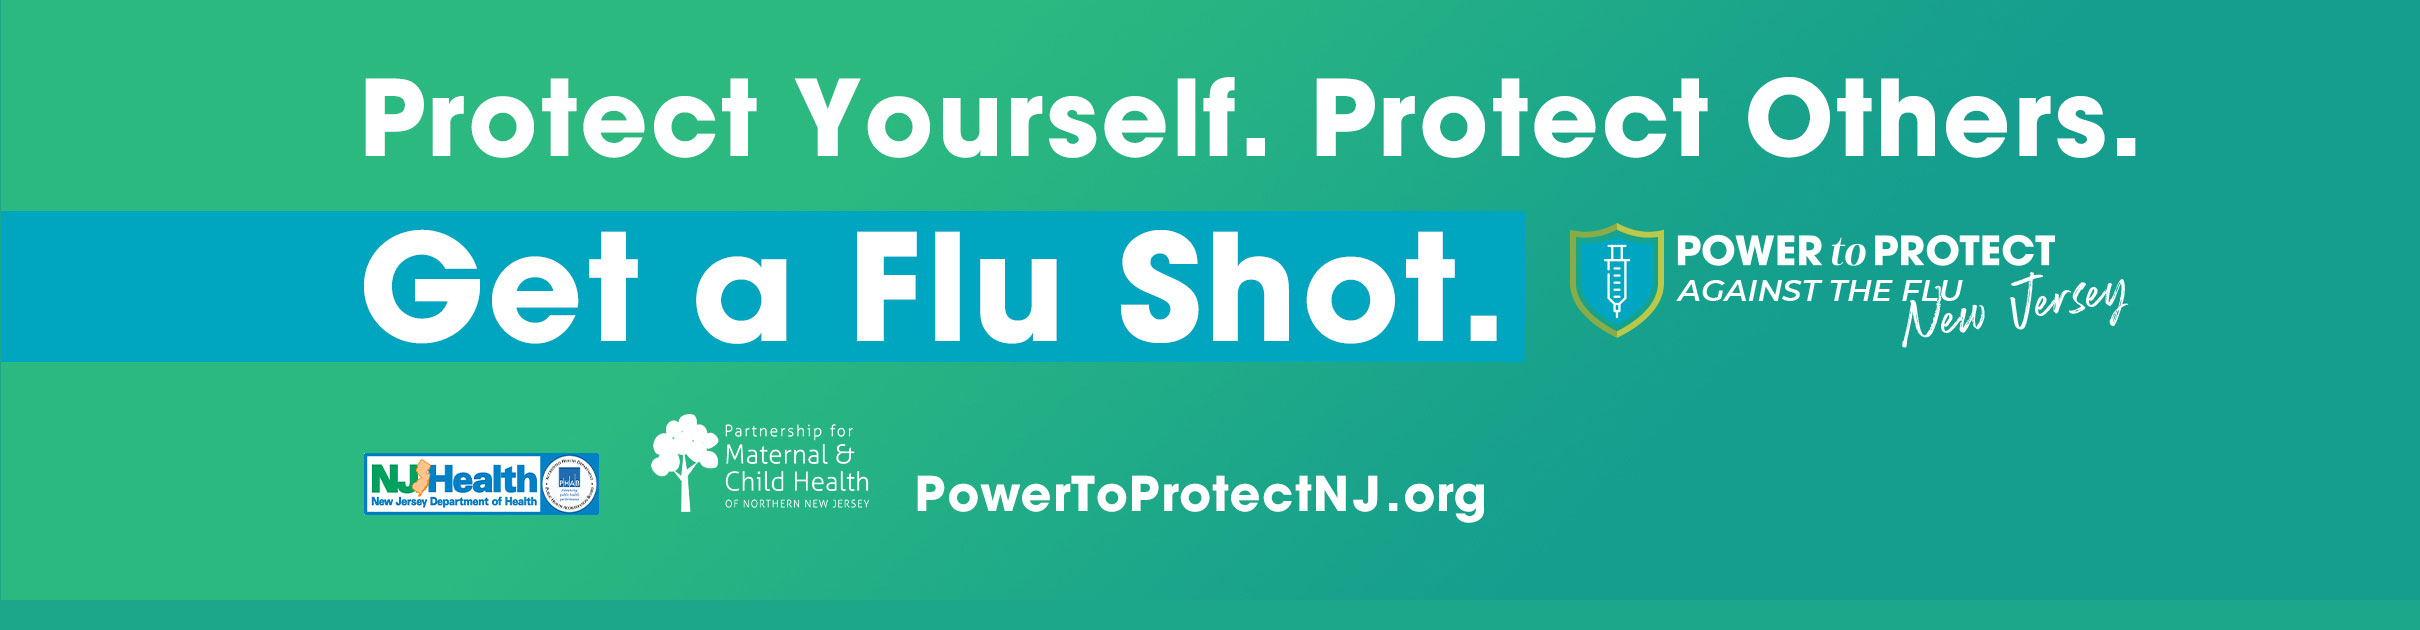 Protect Youself, Protect Others- Get Flu Shot - Read More